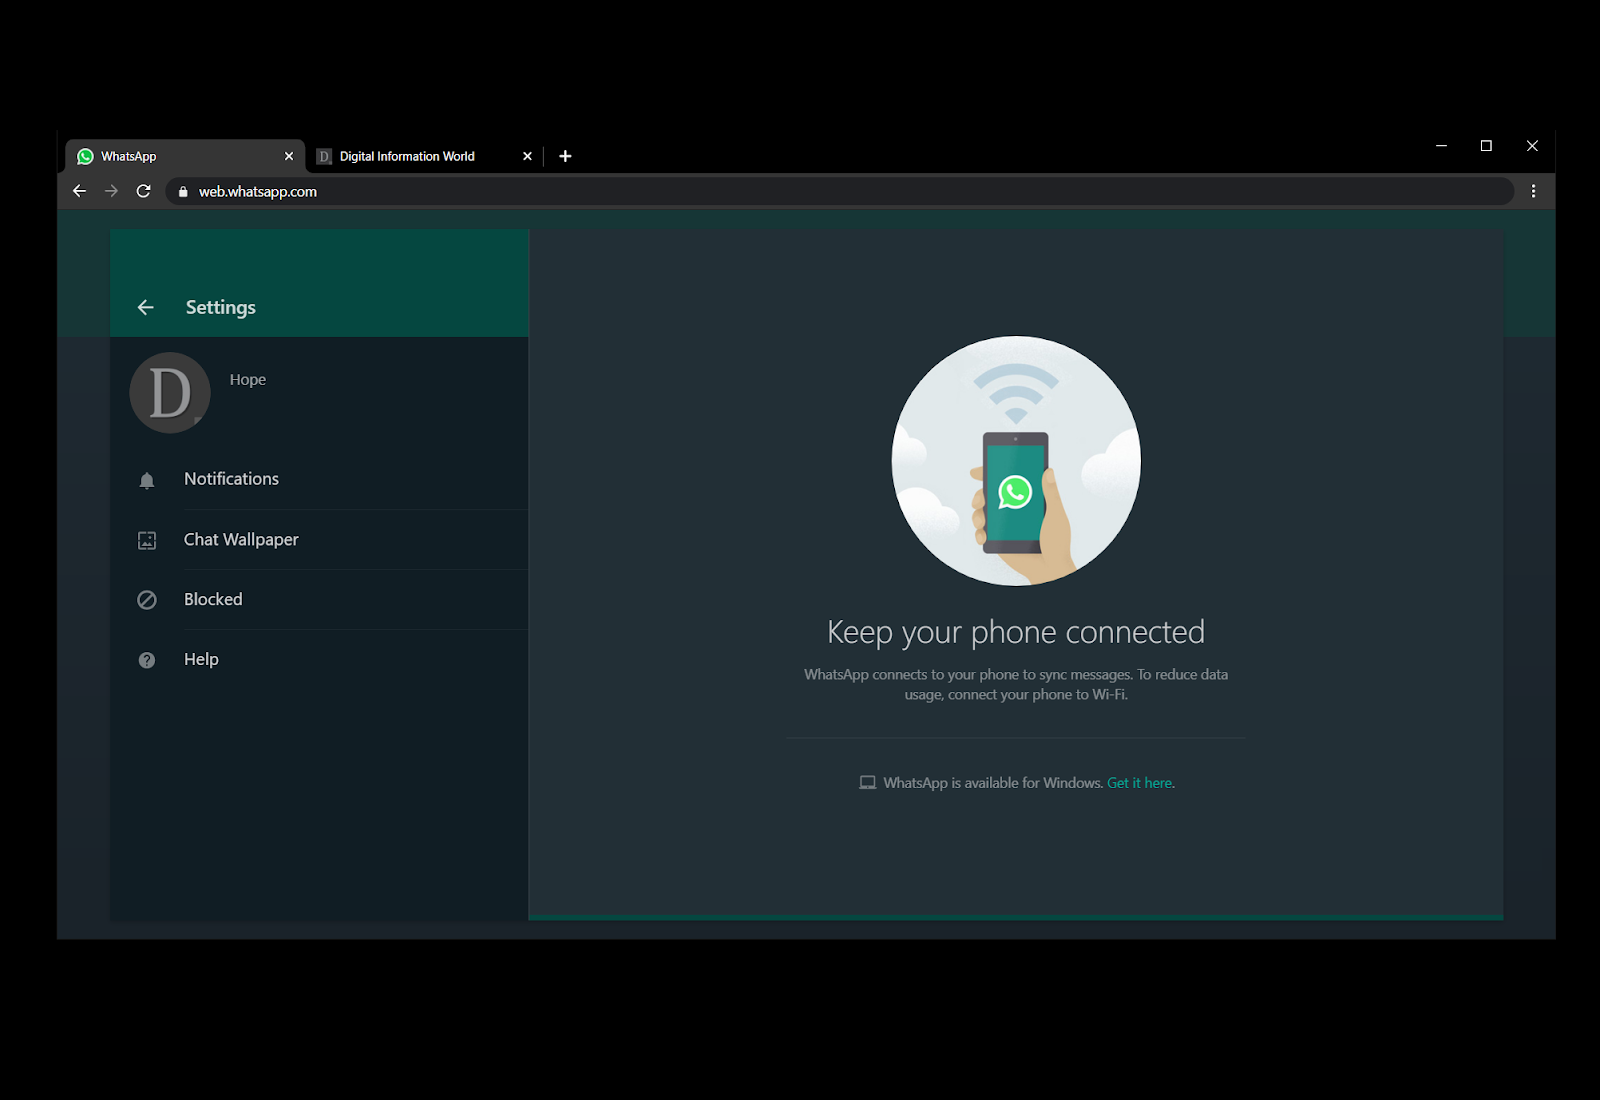 How to enable WhatsApp Web Dark Mode on Chrome, Firefox - Complete Guide